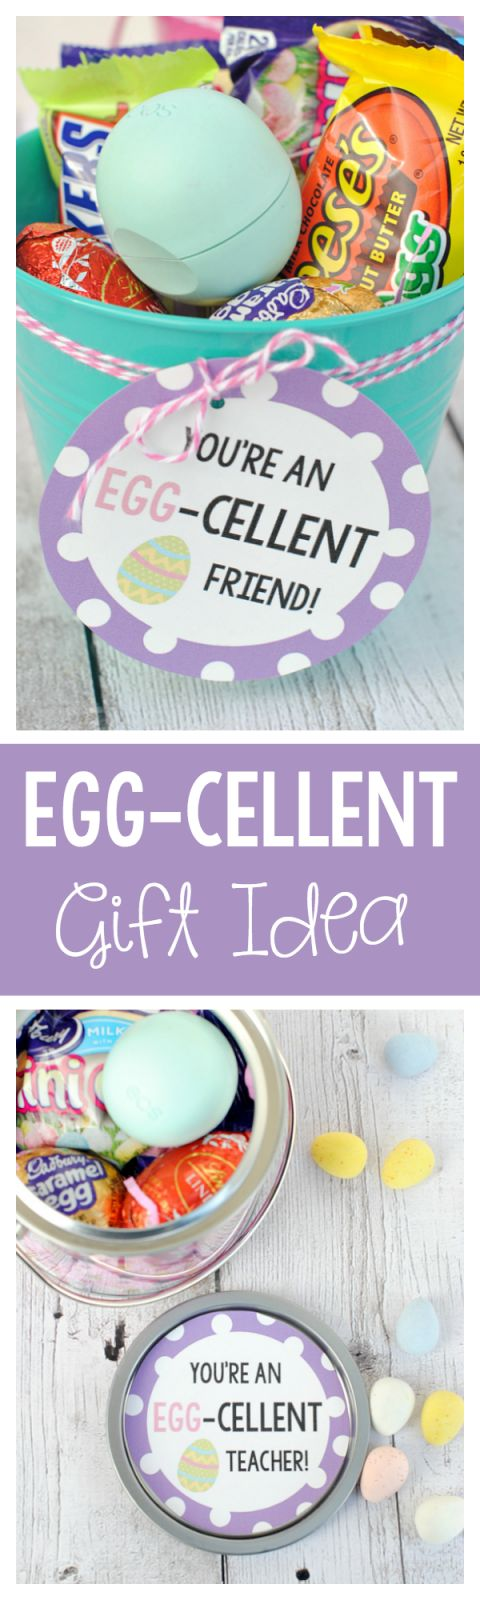 What a cute gift idea for a friend at Easter!